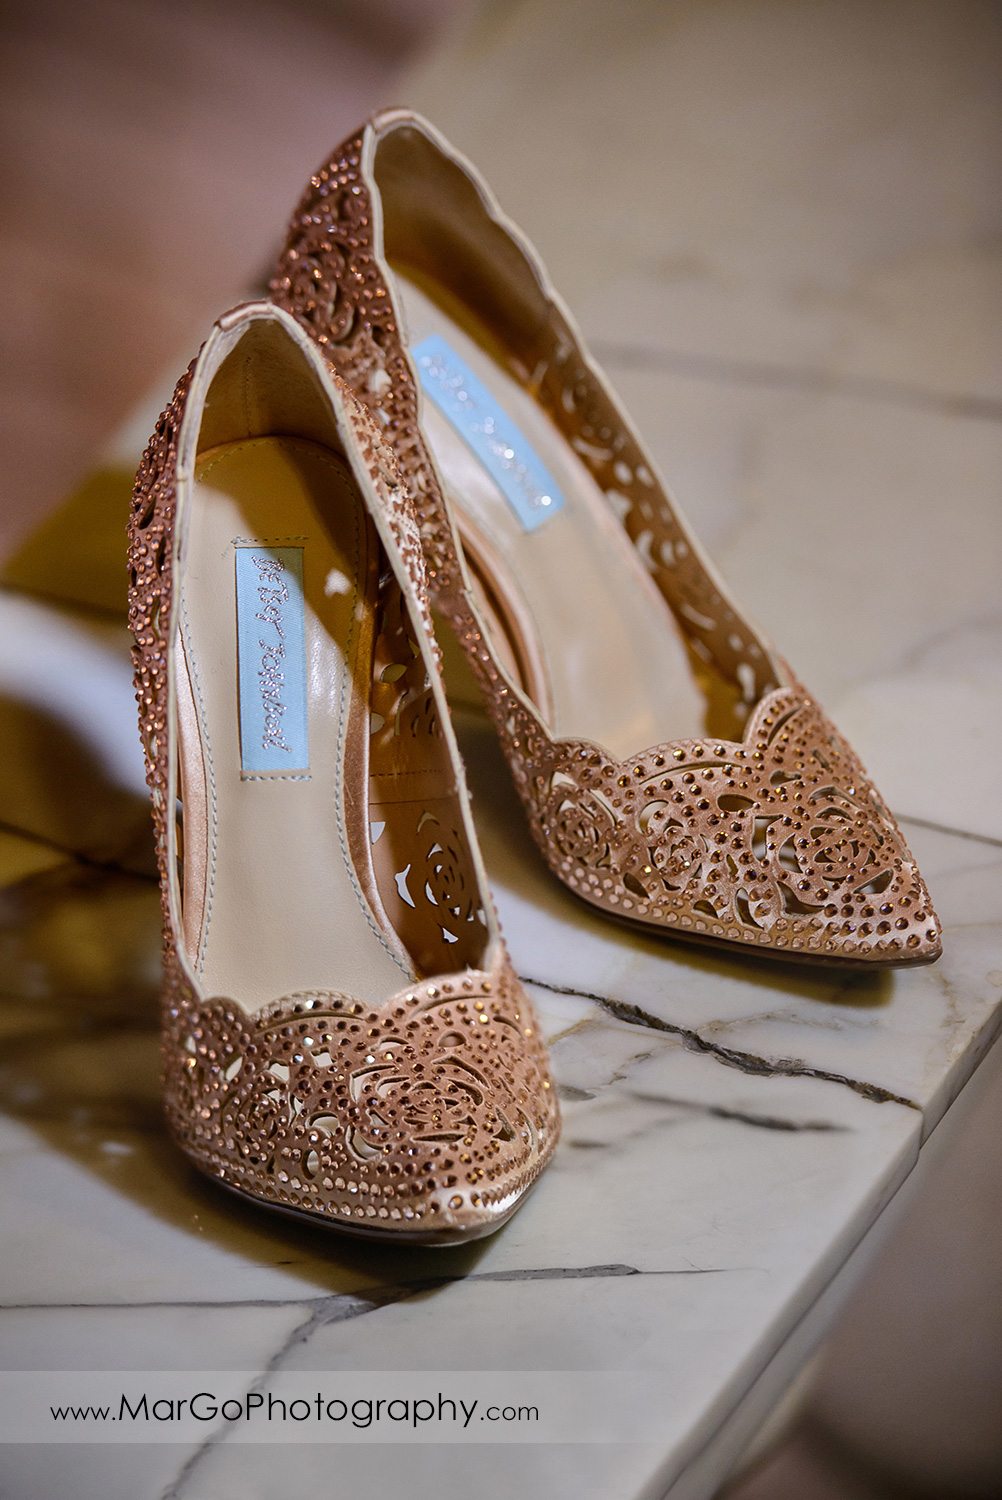 wedding shoes at Whitcomb Hotel in San Francisco